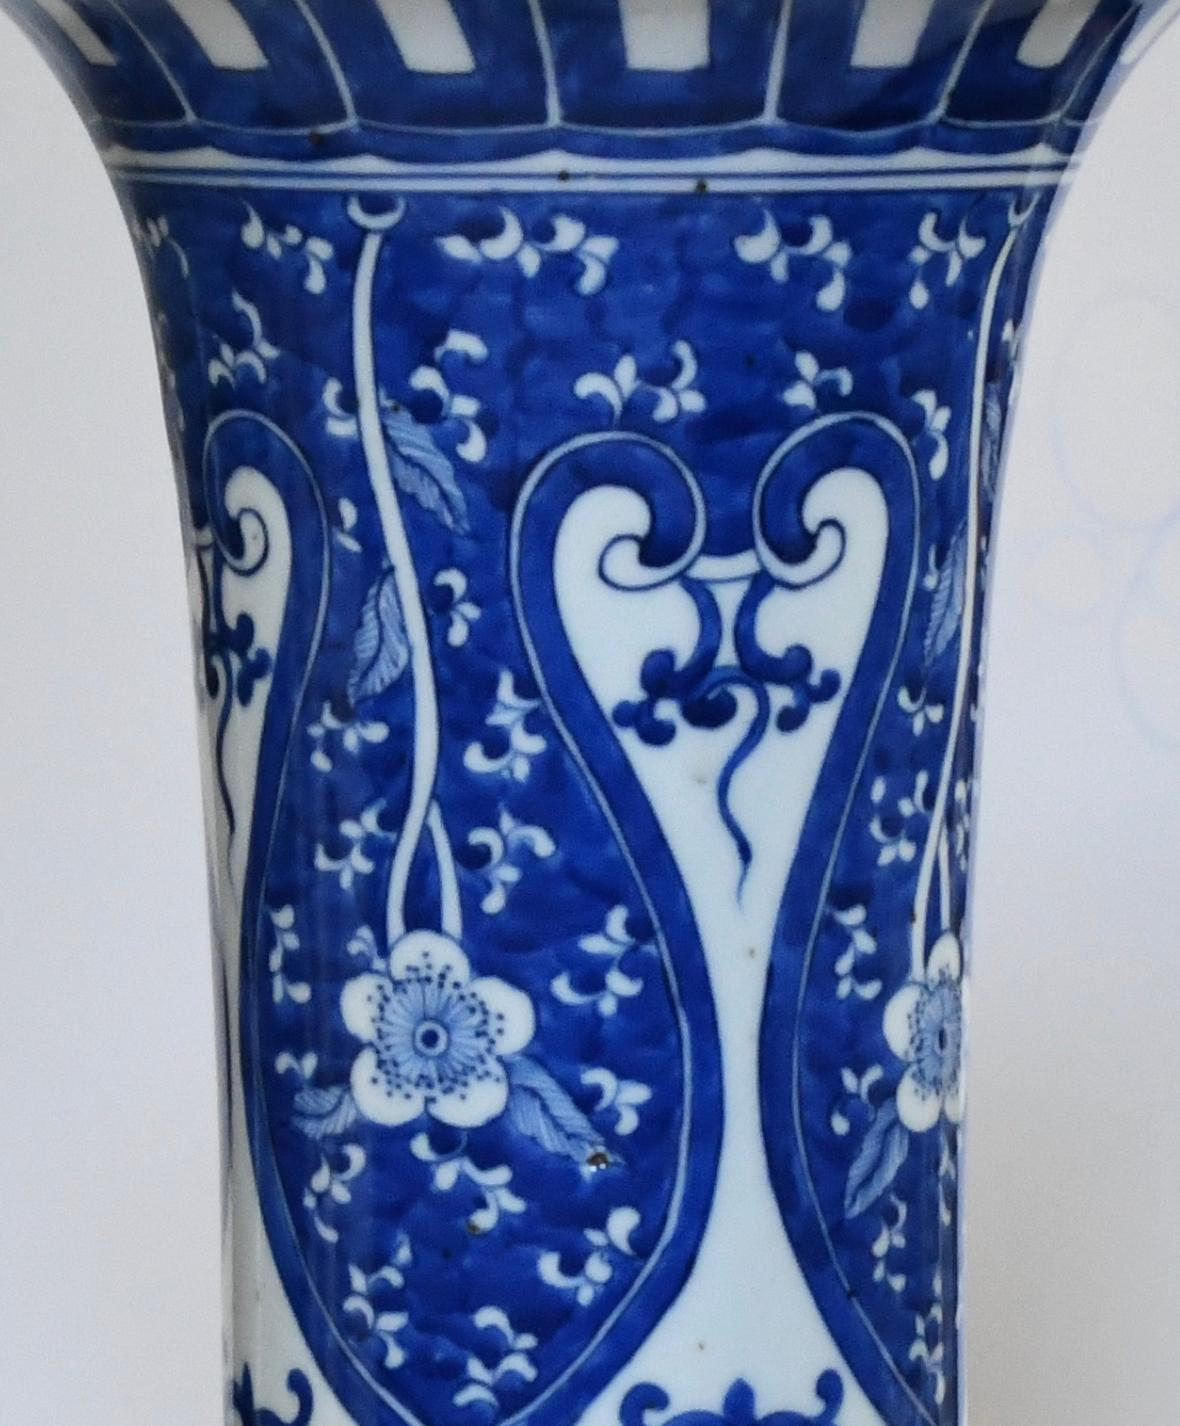 Blue And White Porcelain Lamps For Sale At 1stdibs